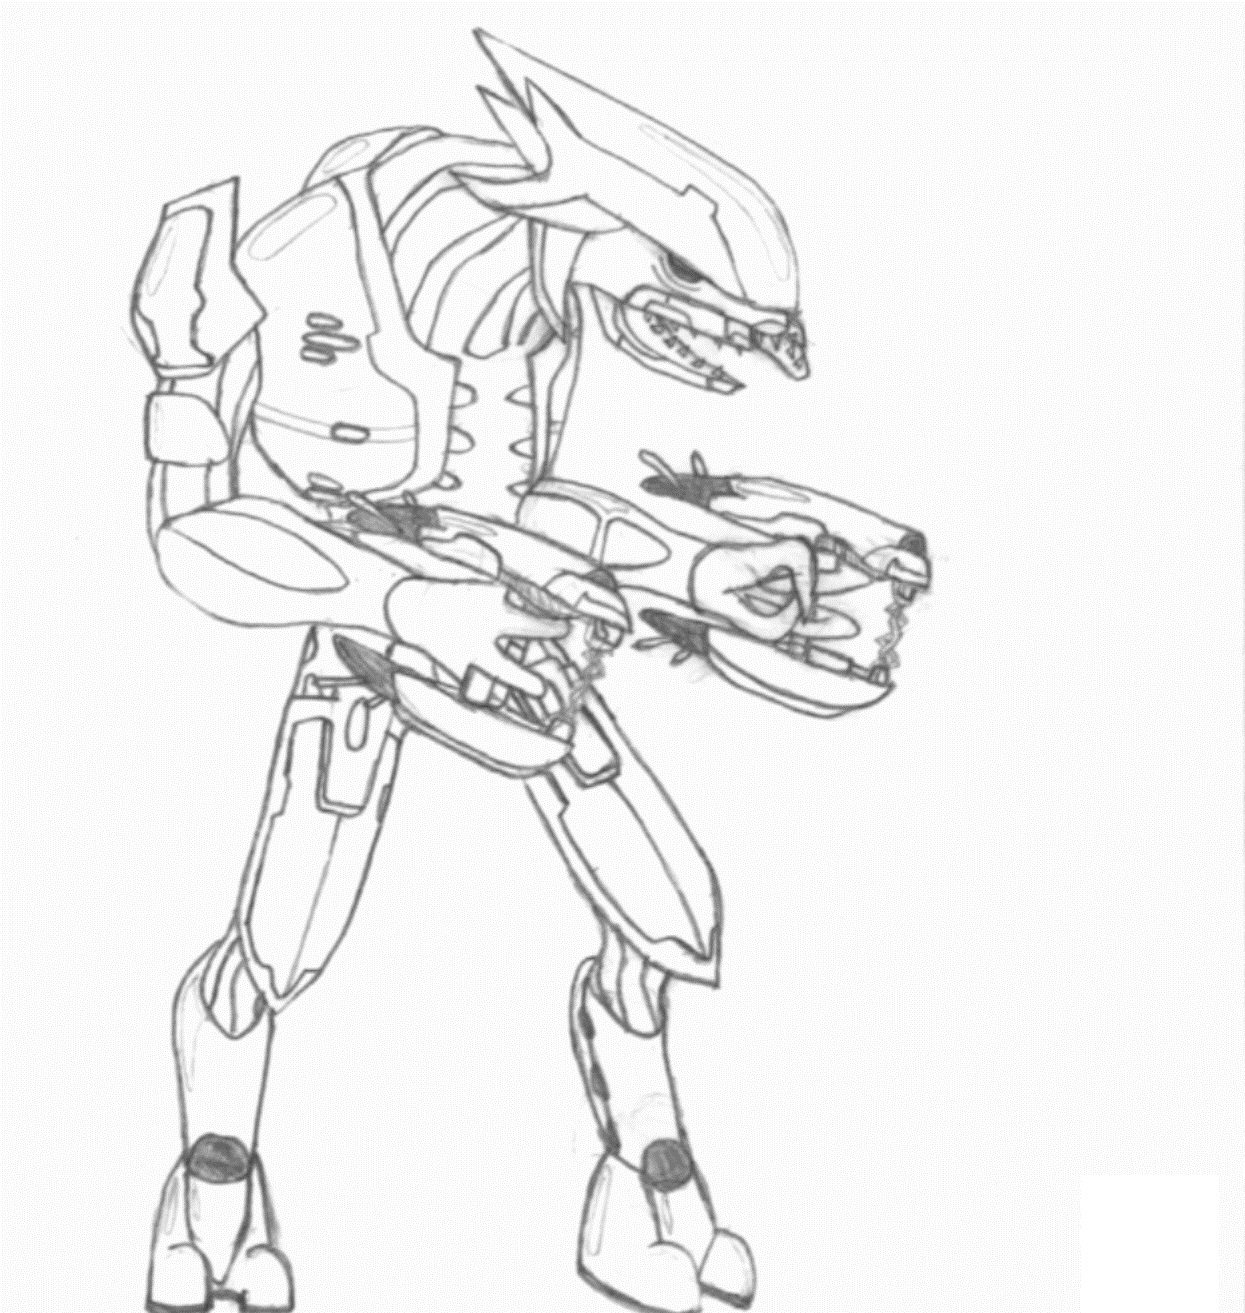 halo coloring pages to print - Halo Coloring Pages